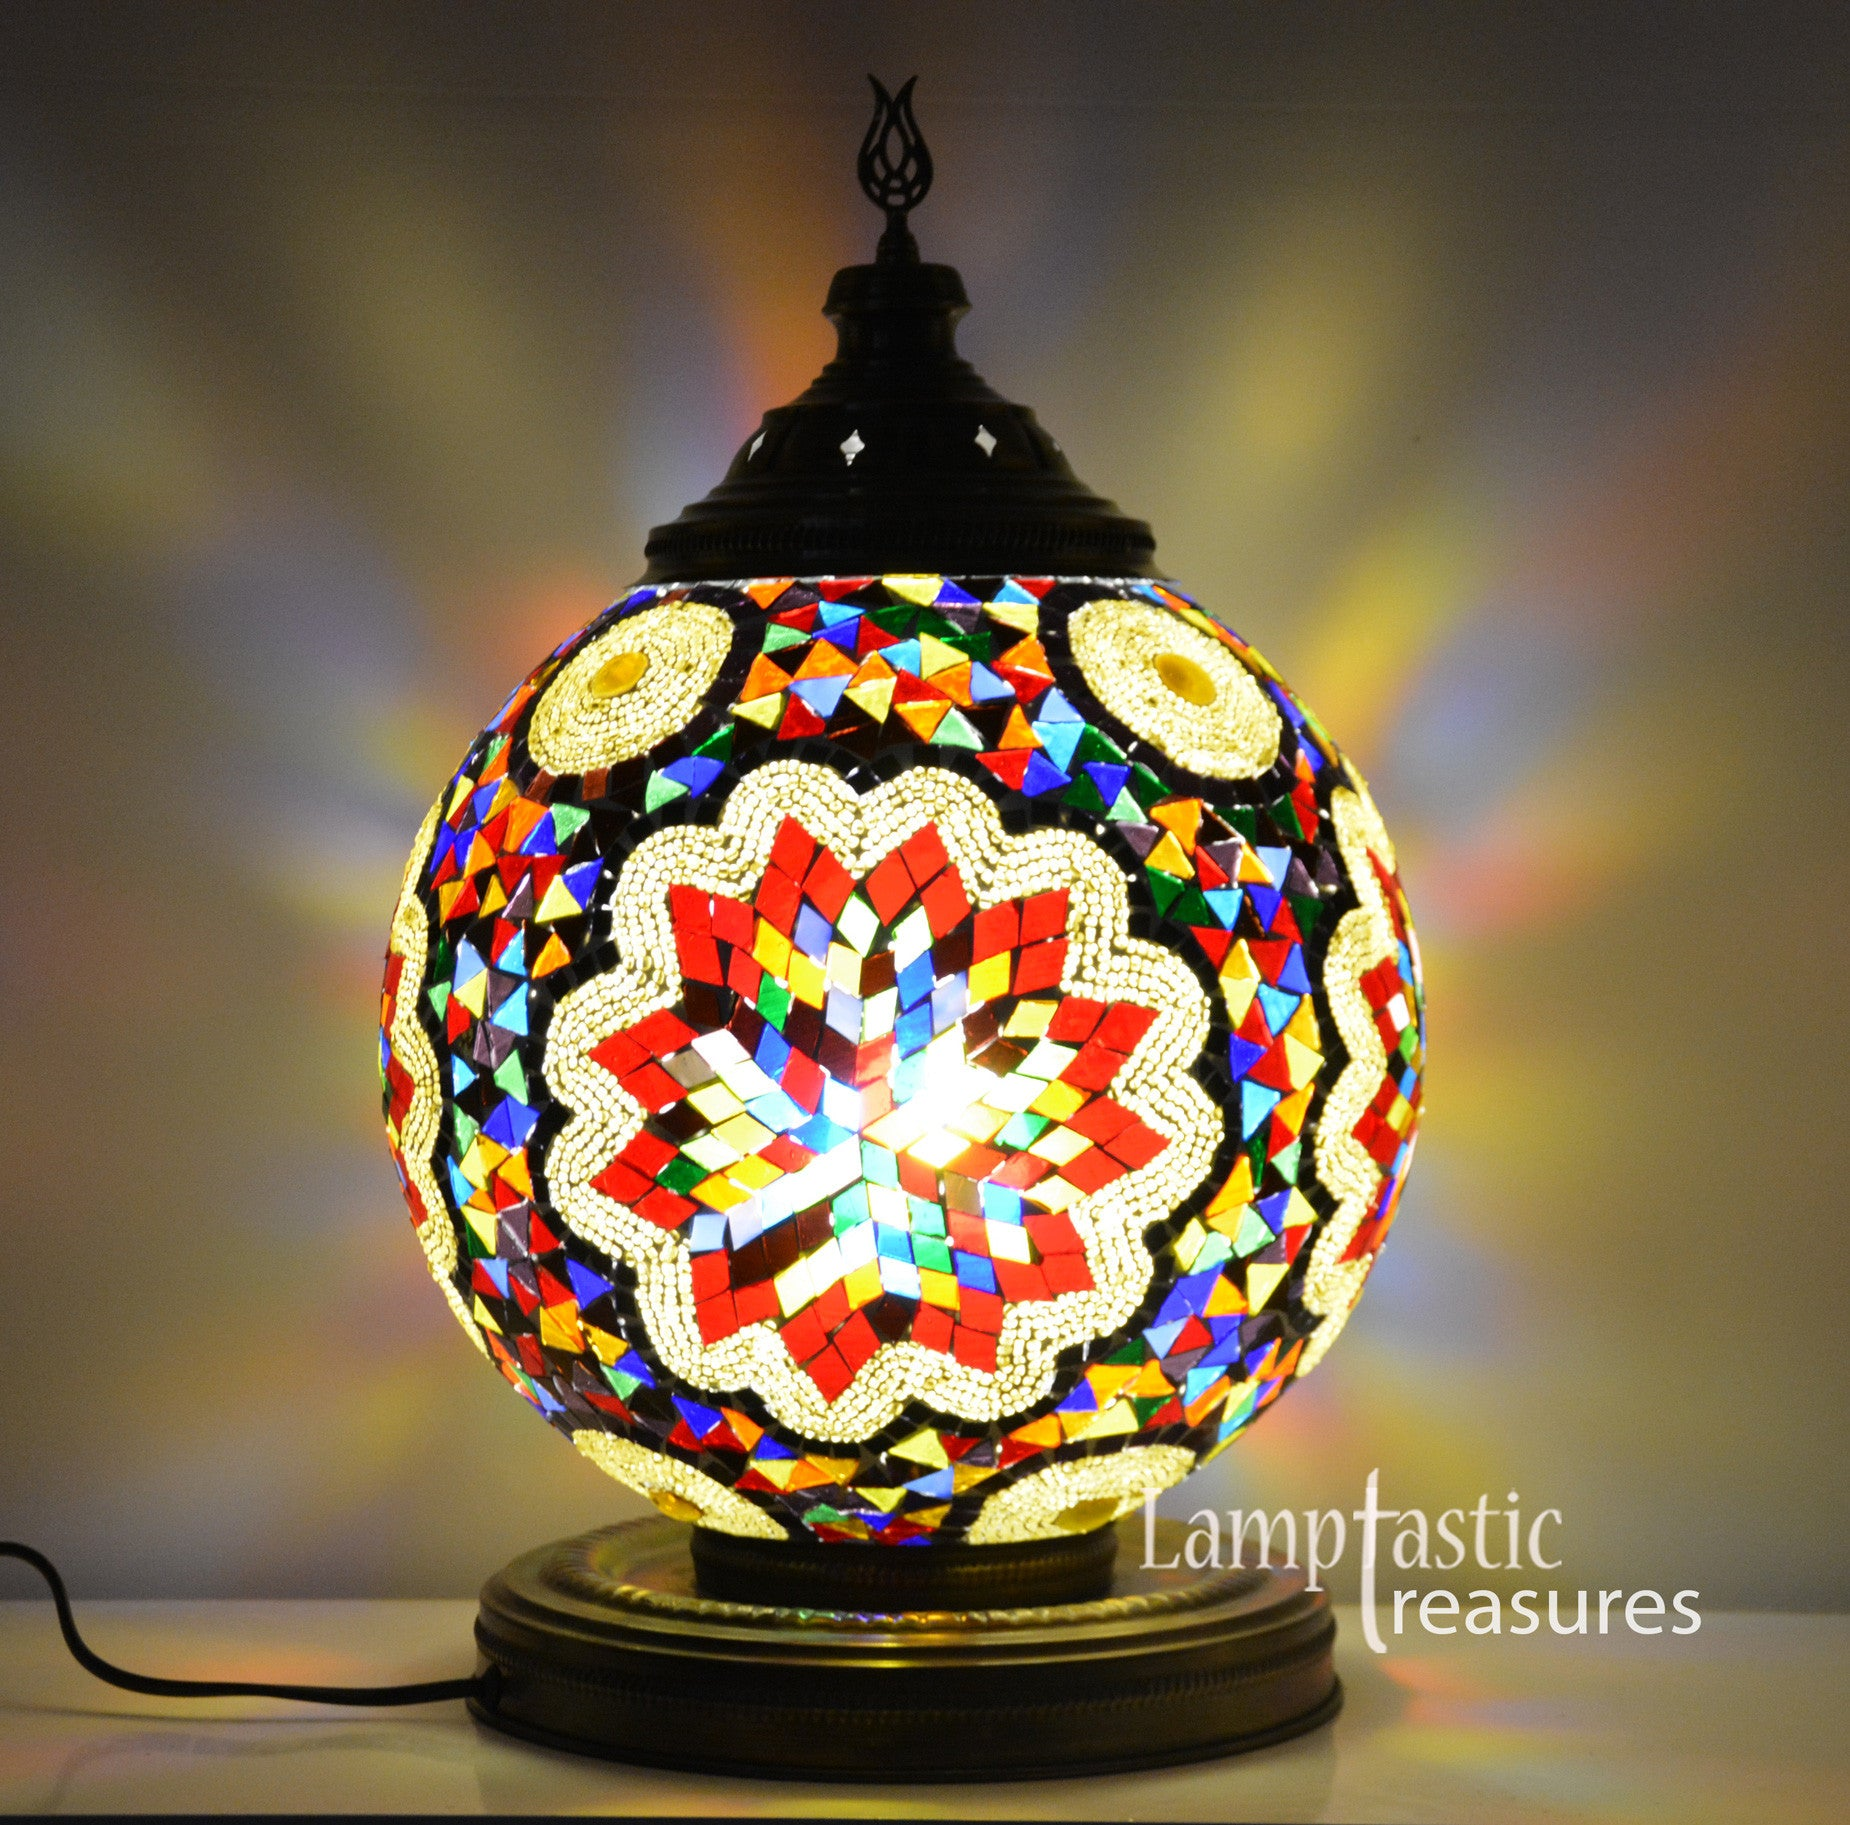 Turkish mosaic table lamp large glass globe lamptastic turkish lamps turkish lamp turkish mosaic lamps turkish lighting lamps turkish aloadofball Images